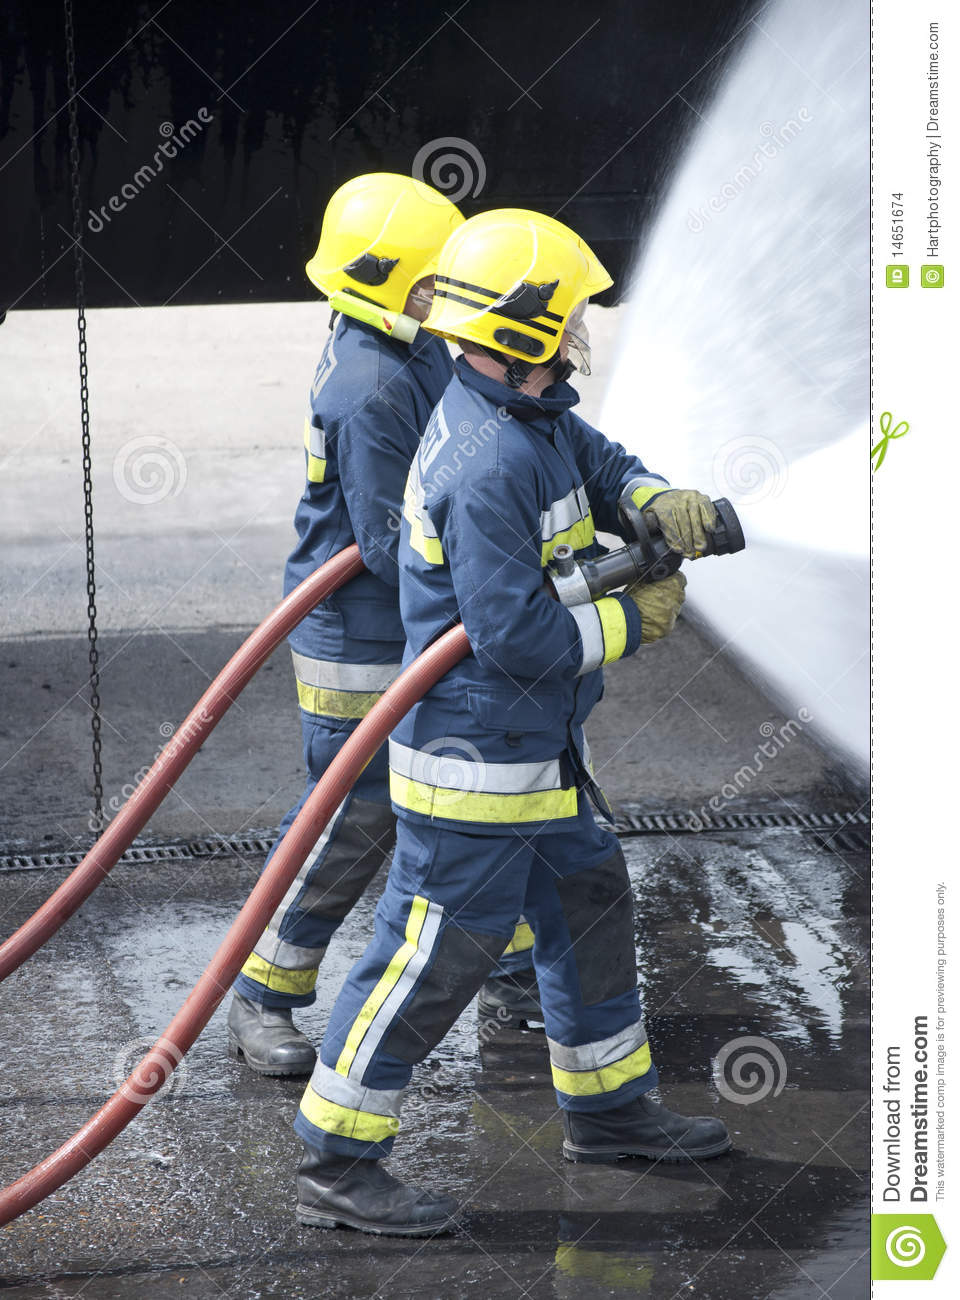 Firefighters In Action Stock Photo. Image Of Safe, Protect